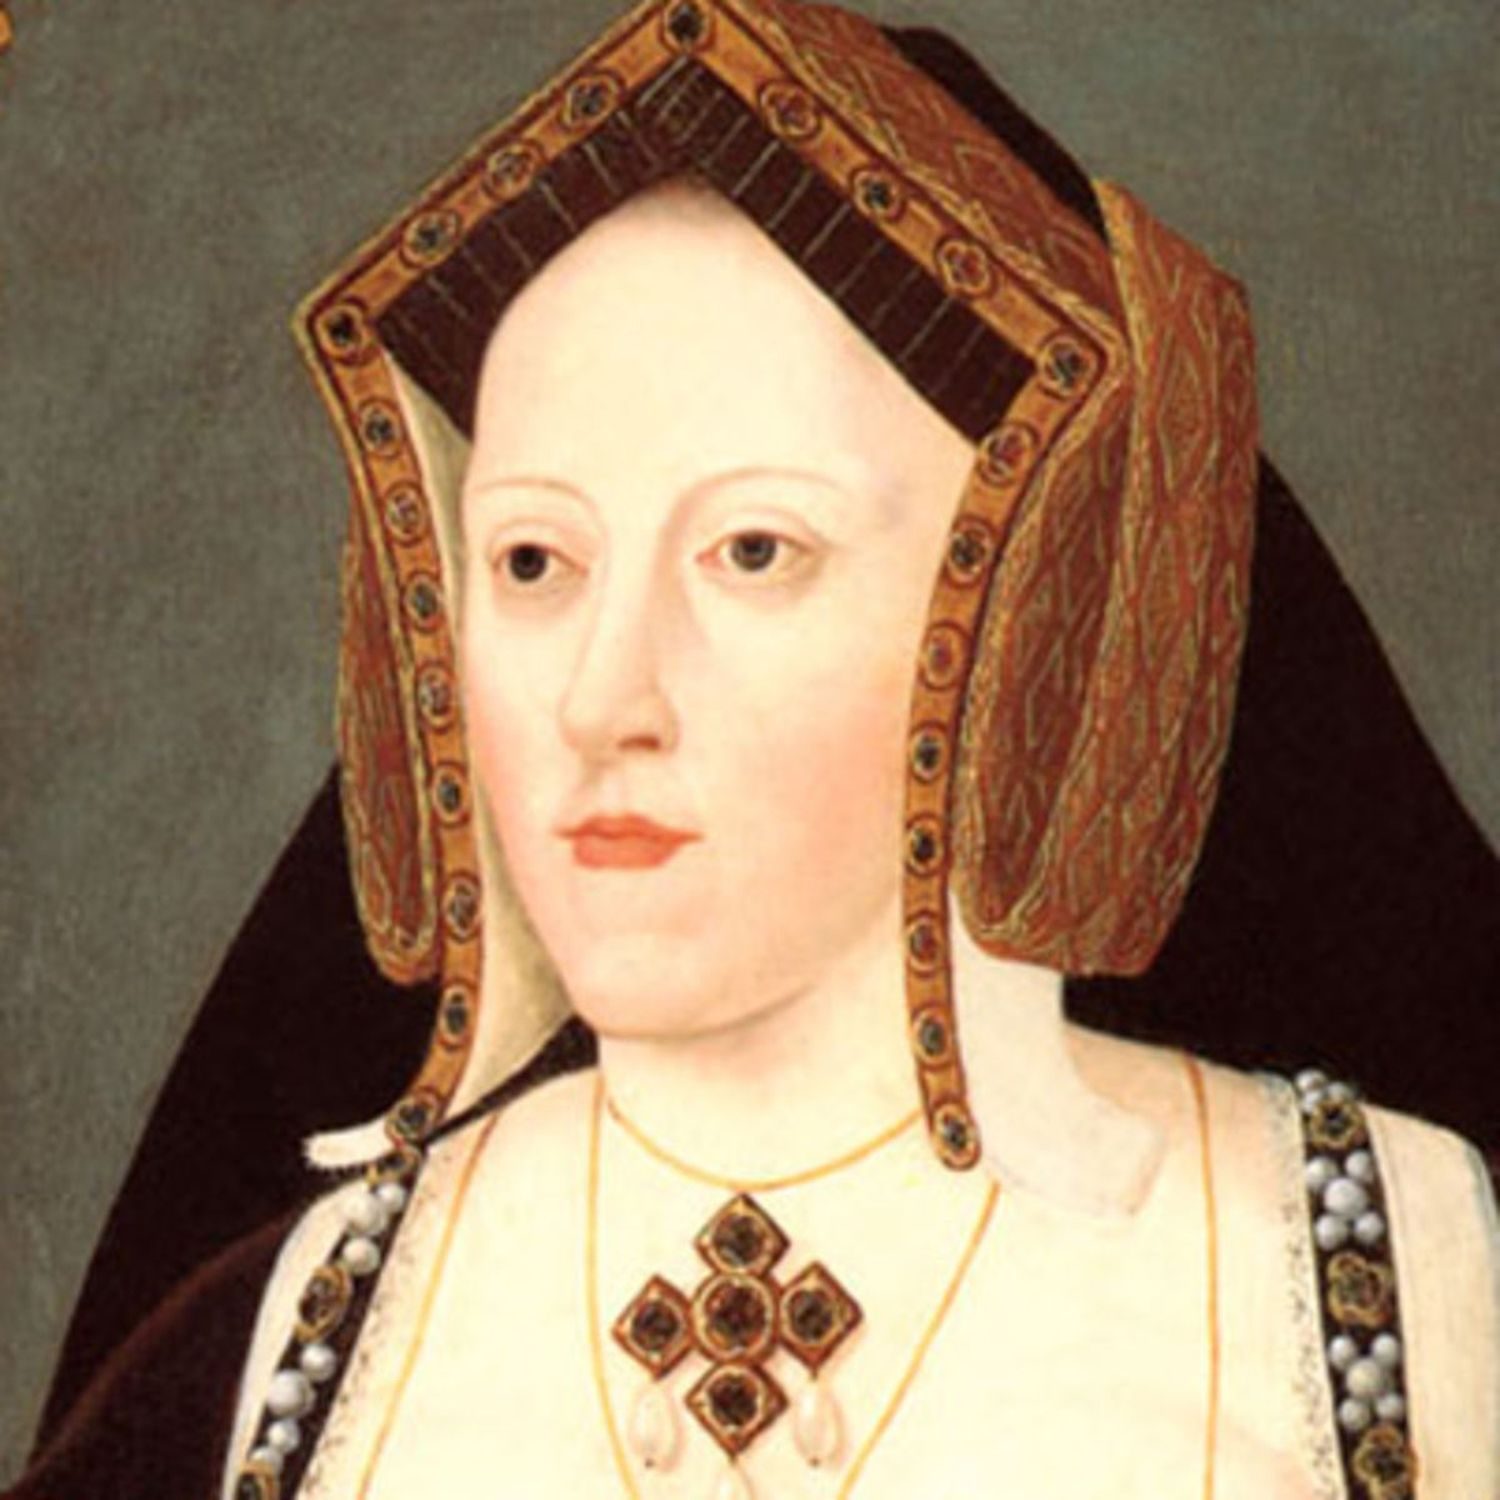 Tudor Times talks to us about Catherine of Aragon